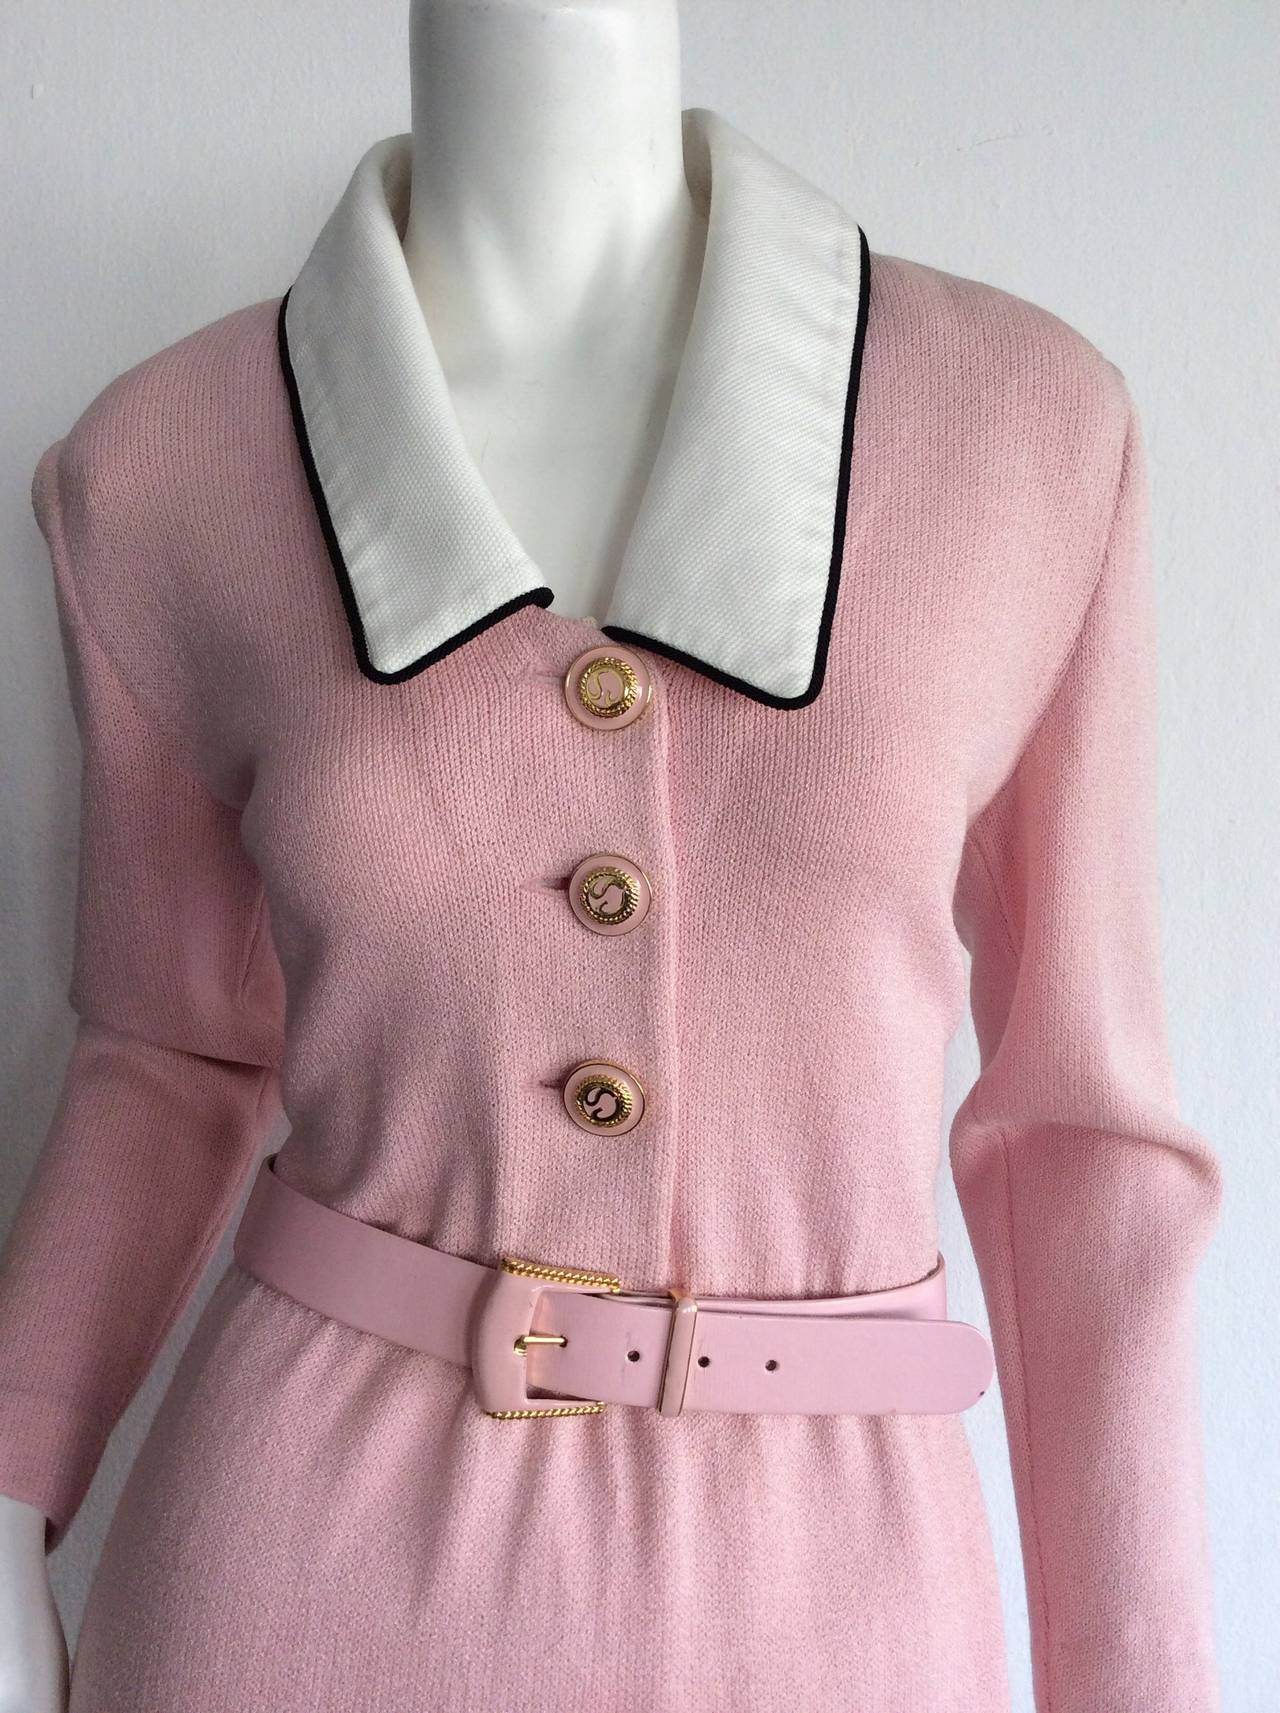 Vintage St. John Marie Gray Pink Santana Knit Belted Dress w/ Removable Collar 6